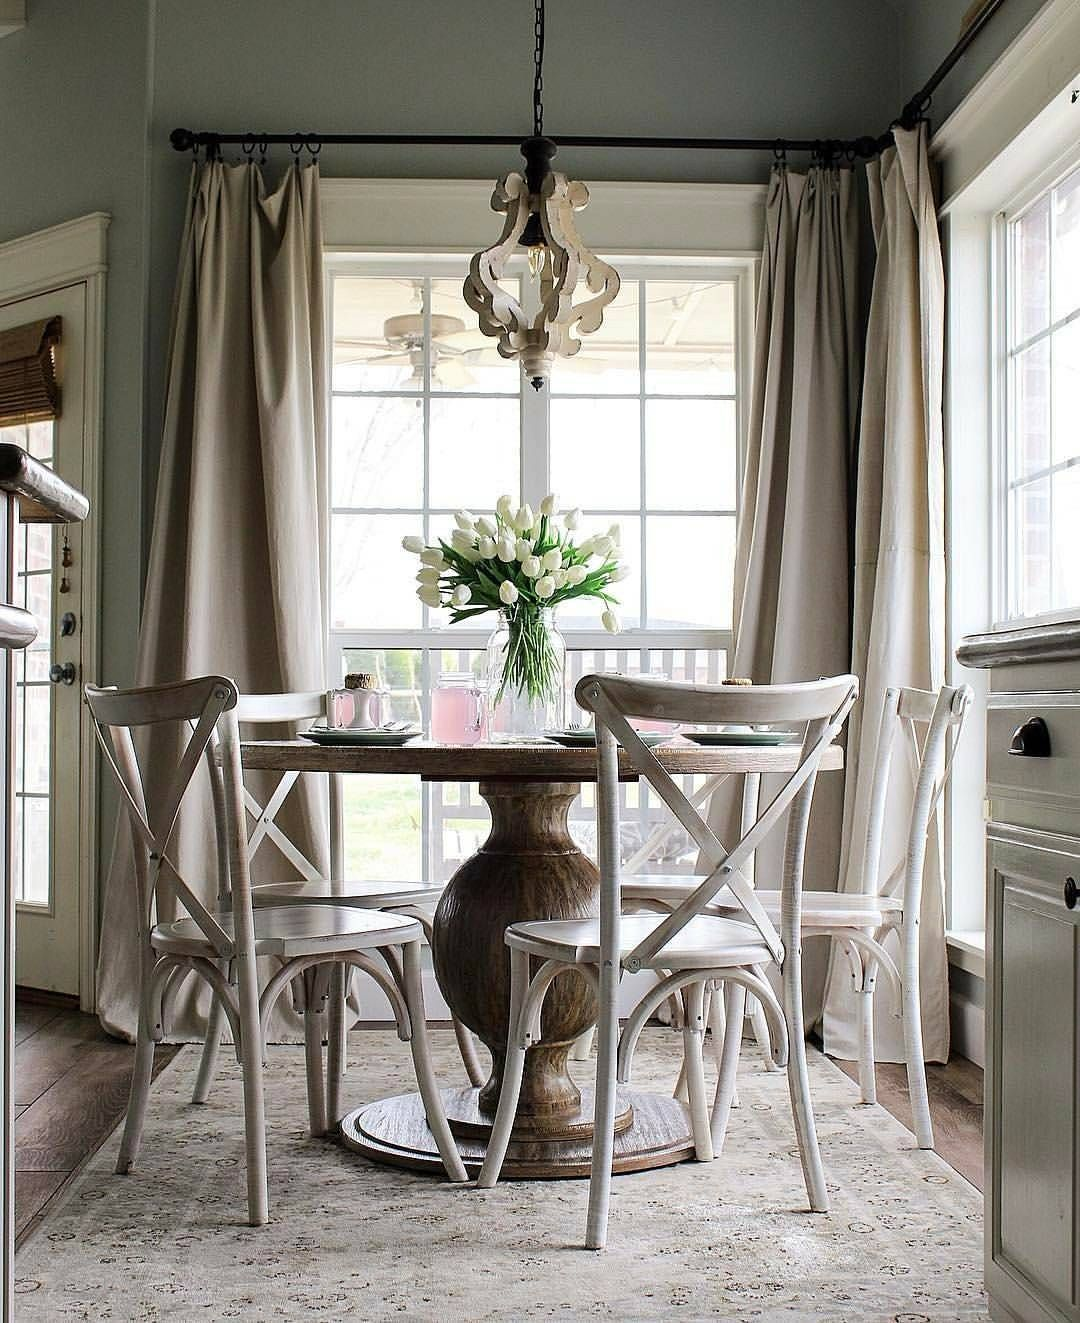 Kitchen Nook Curtains: Pin By Anita Flores On DINING ROOM